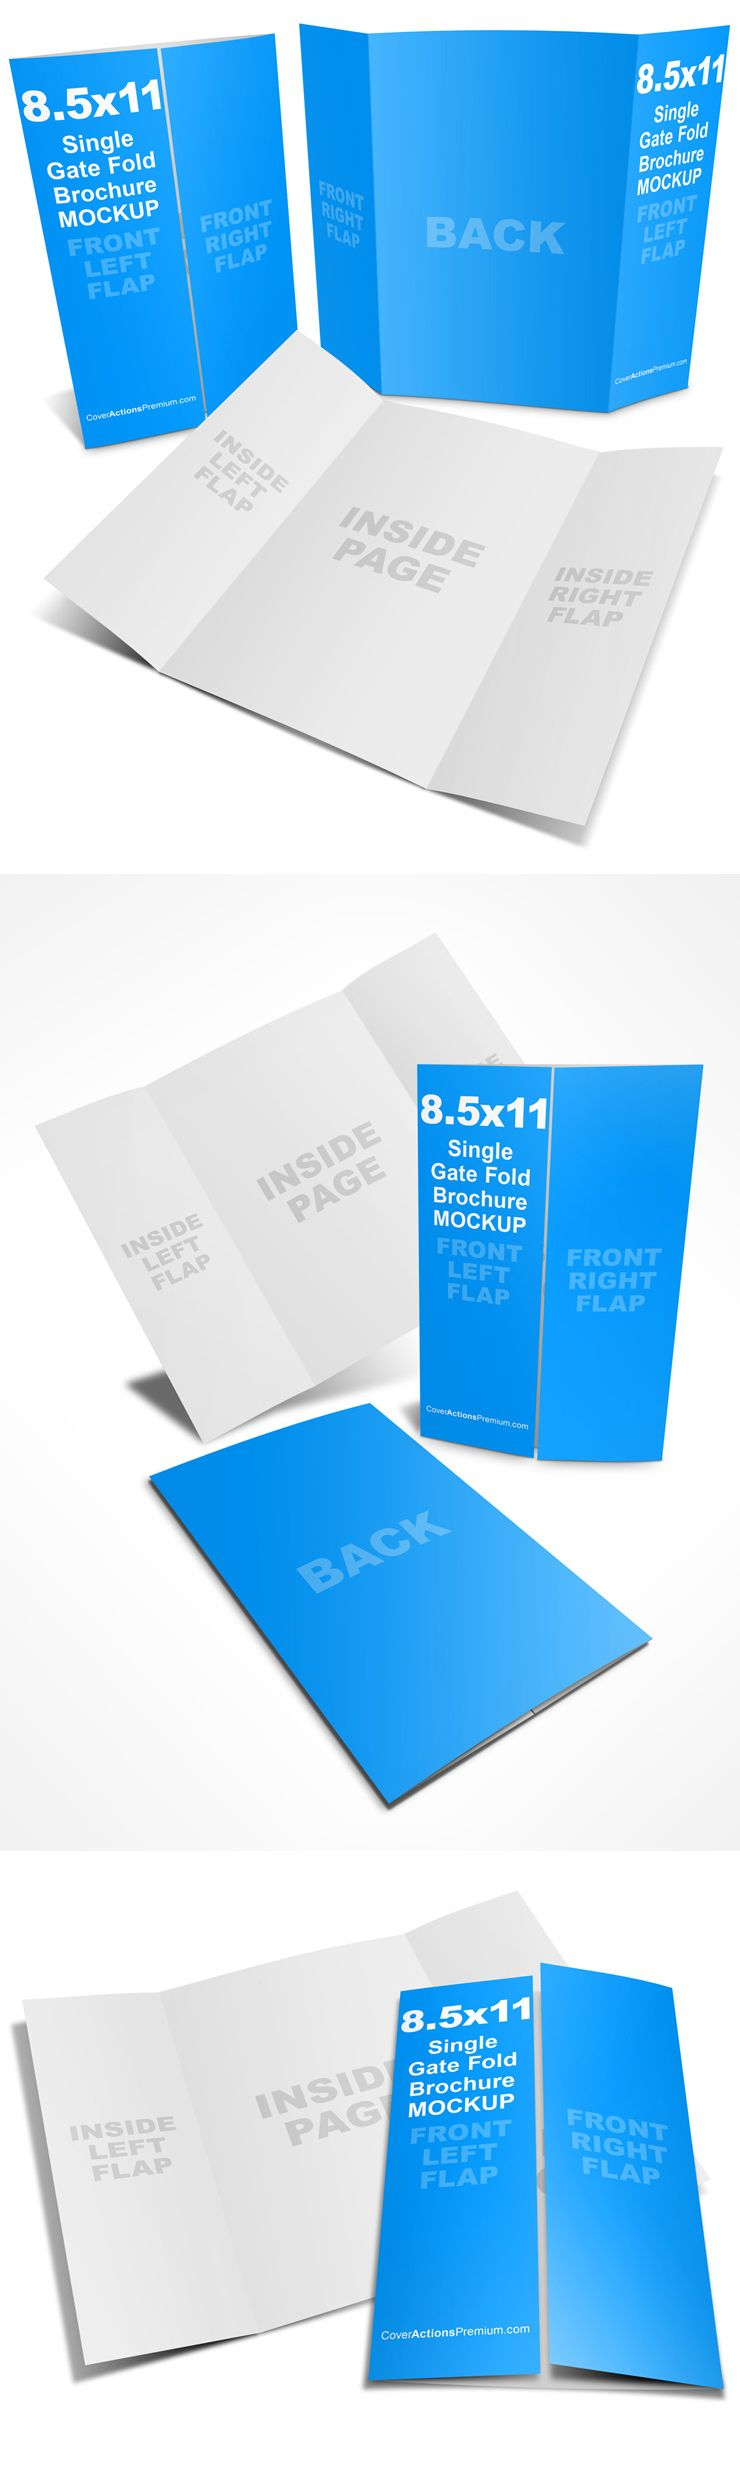 Single Open Gate Fold Brochure Template